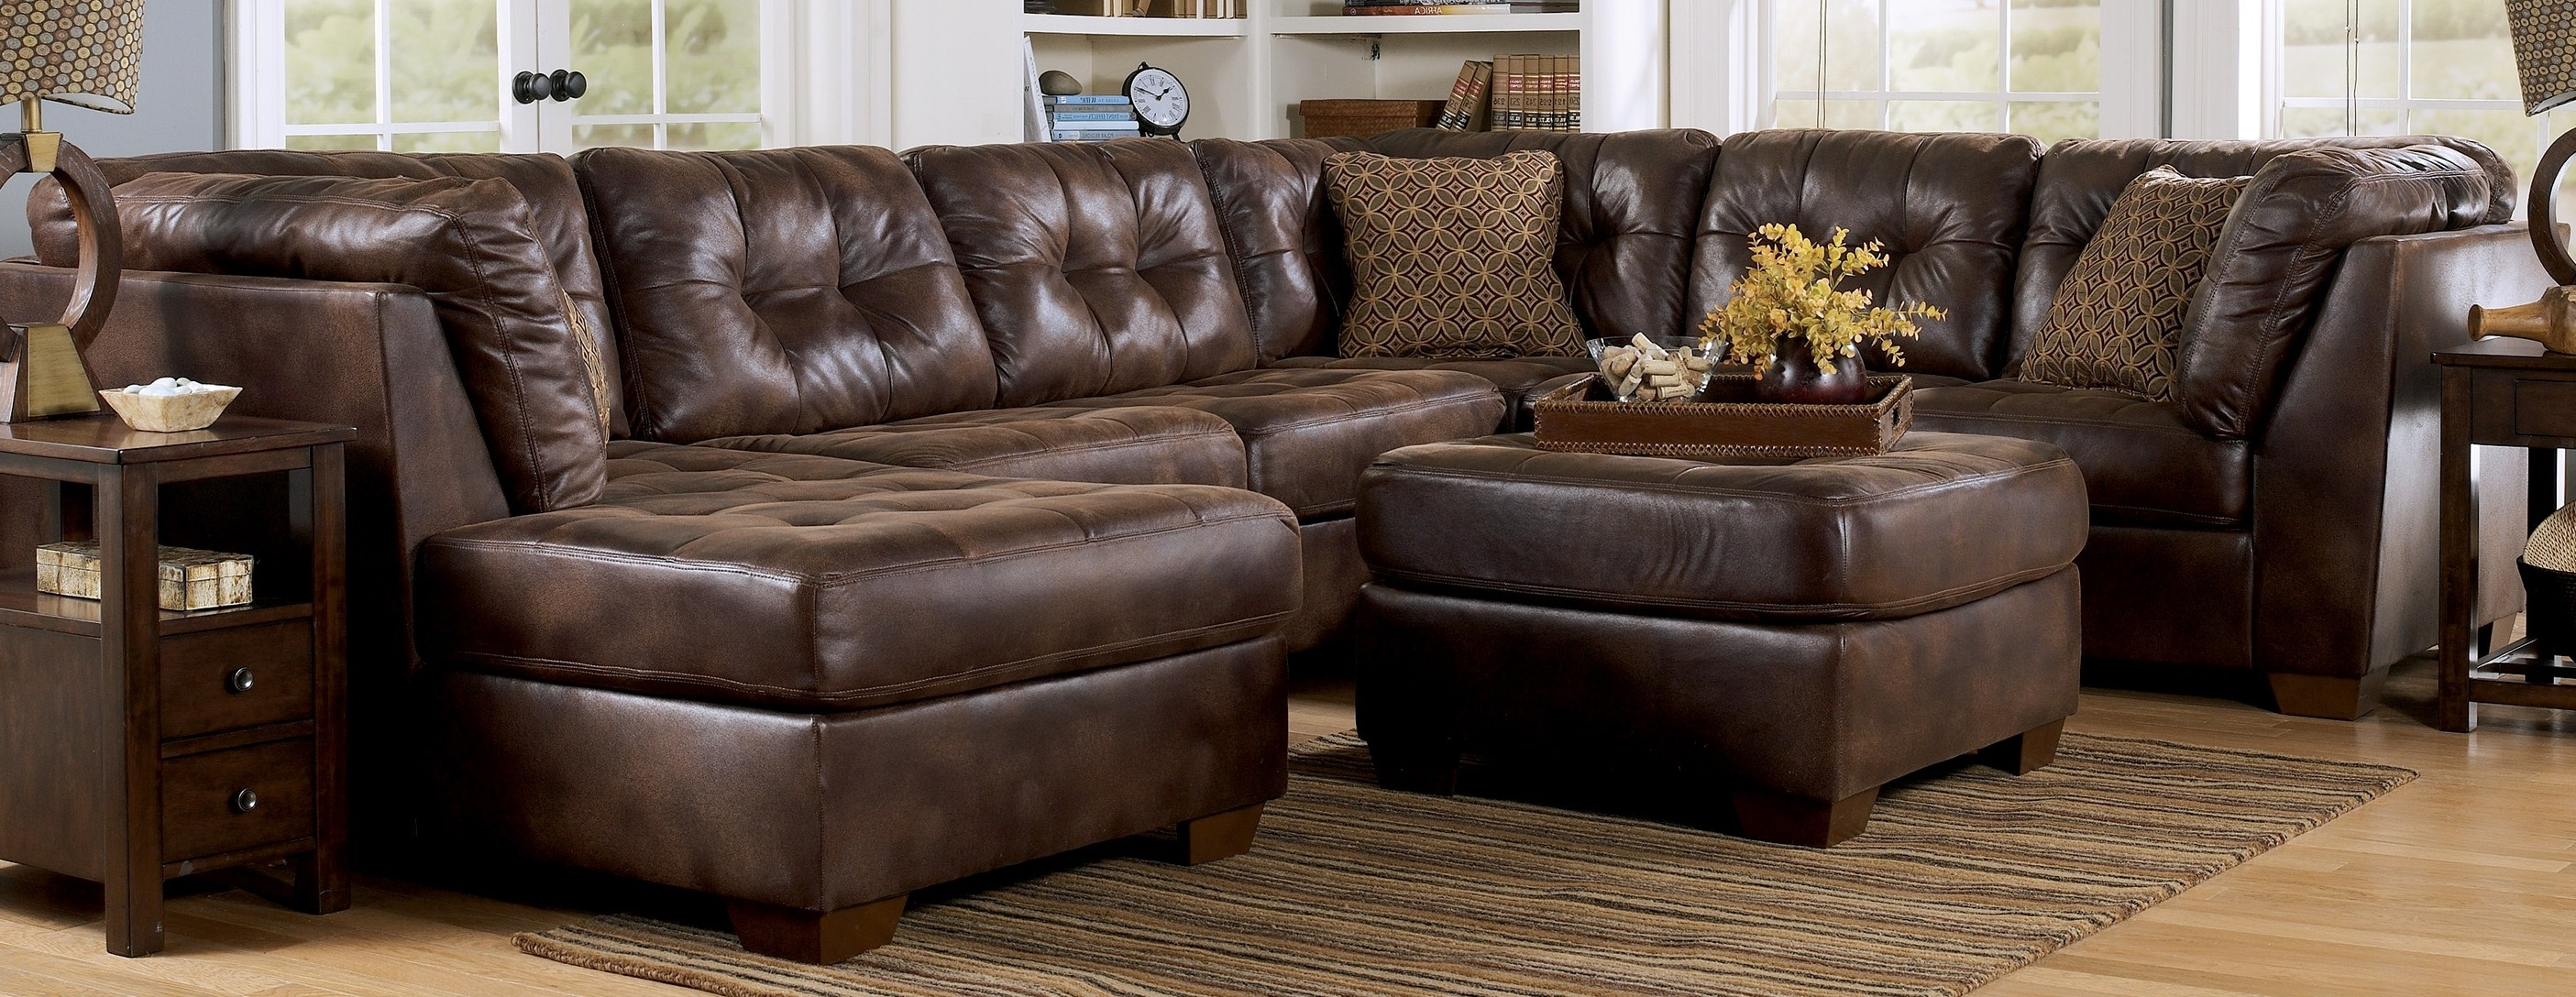 My Parents Have This Couch, And Now We're Saving For It! Its Sooo Within Latest Sectional Sofas With Oversized Ottoman (View 19 of 20)